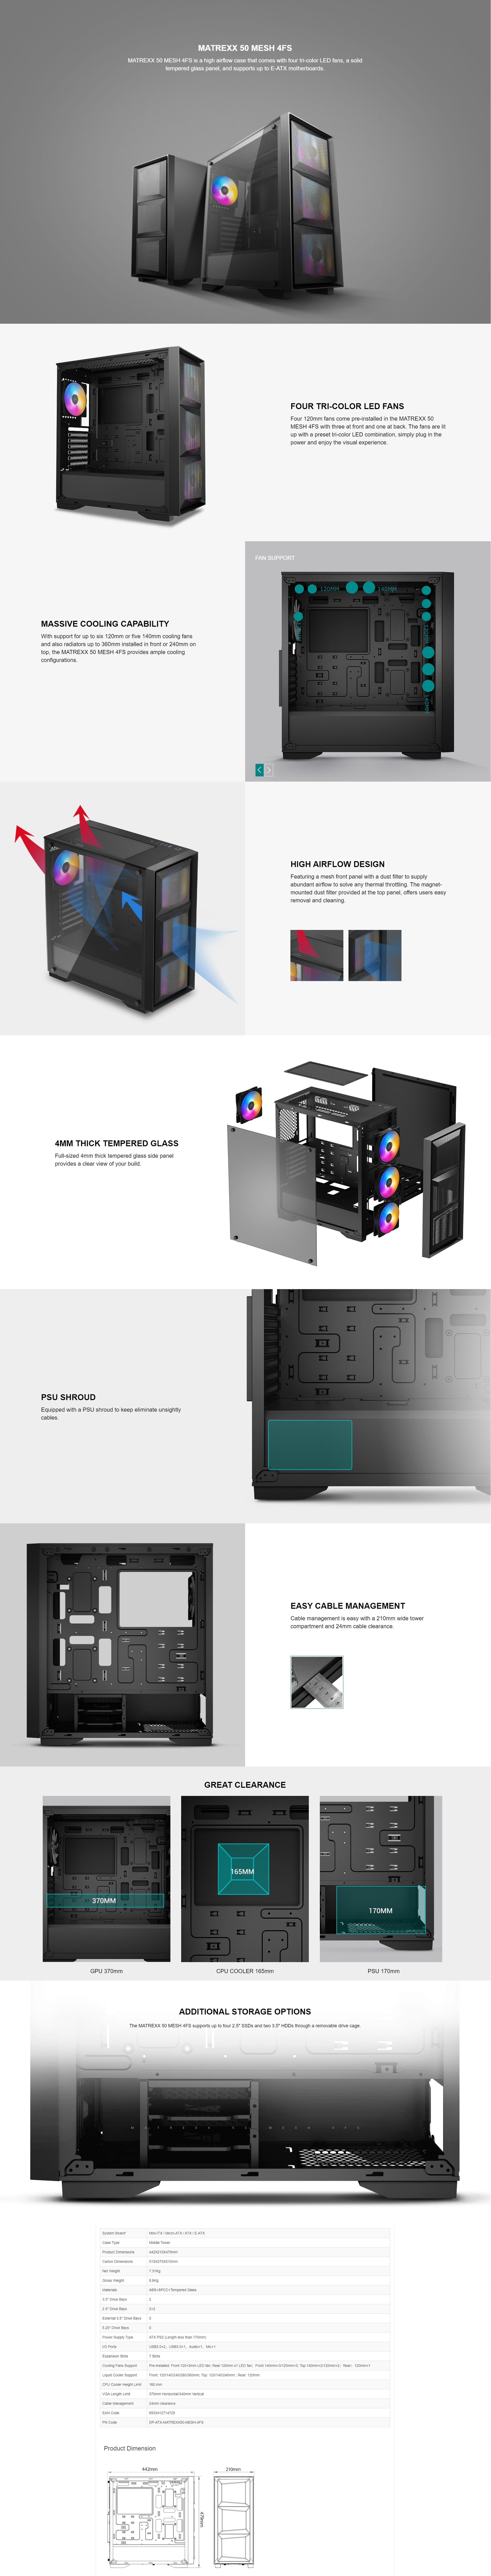 A large marketing image providing additional information about the product Deepcool Matrexx 50 Mesh 4FS RGB Mid Tower Black Case - Additional alt info not provided